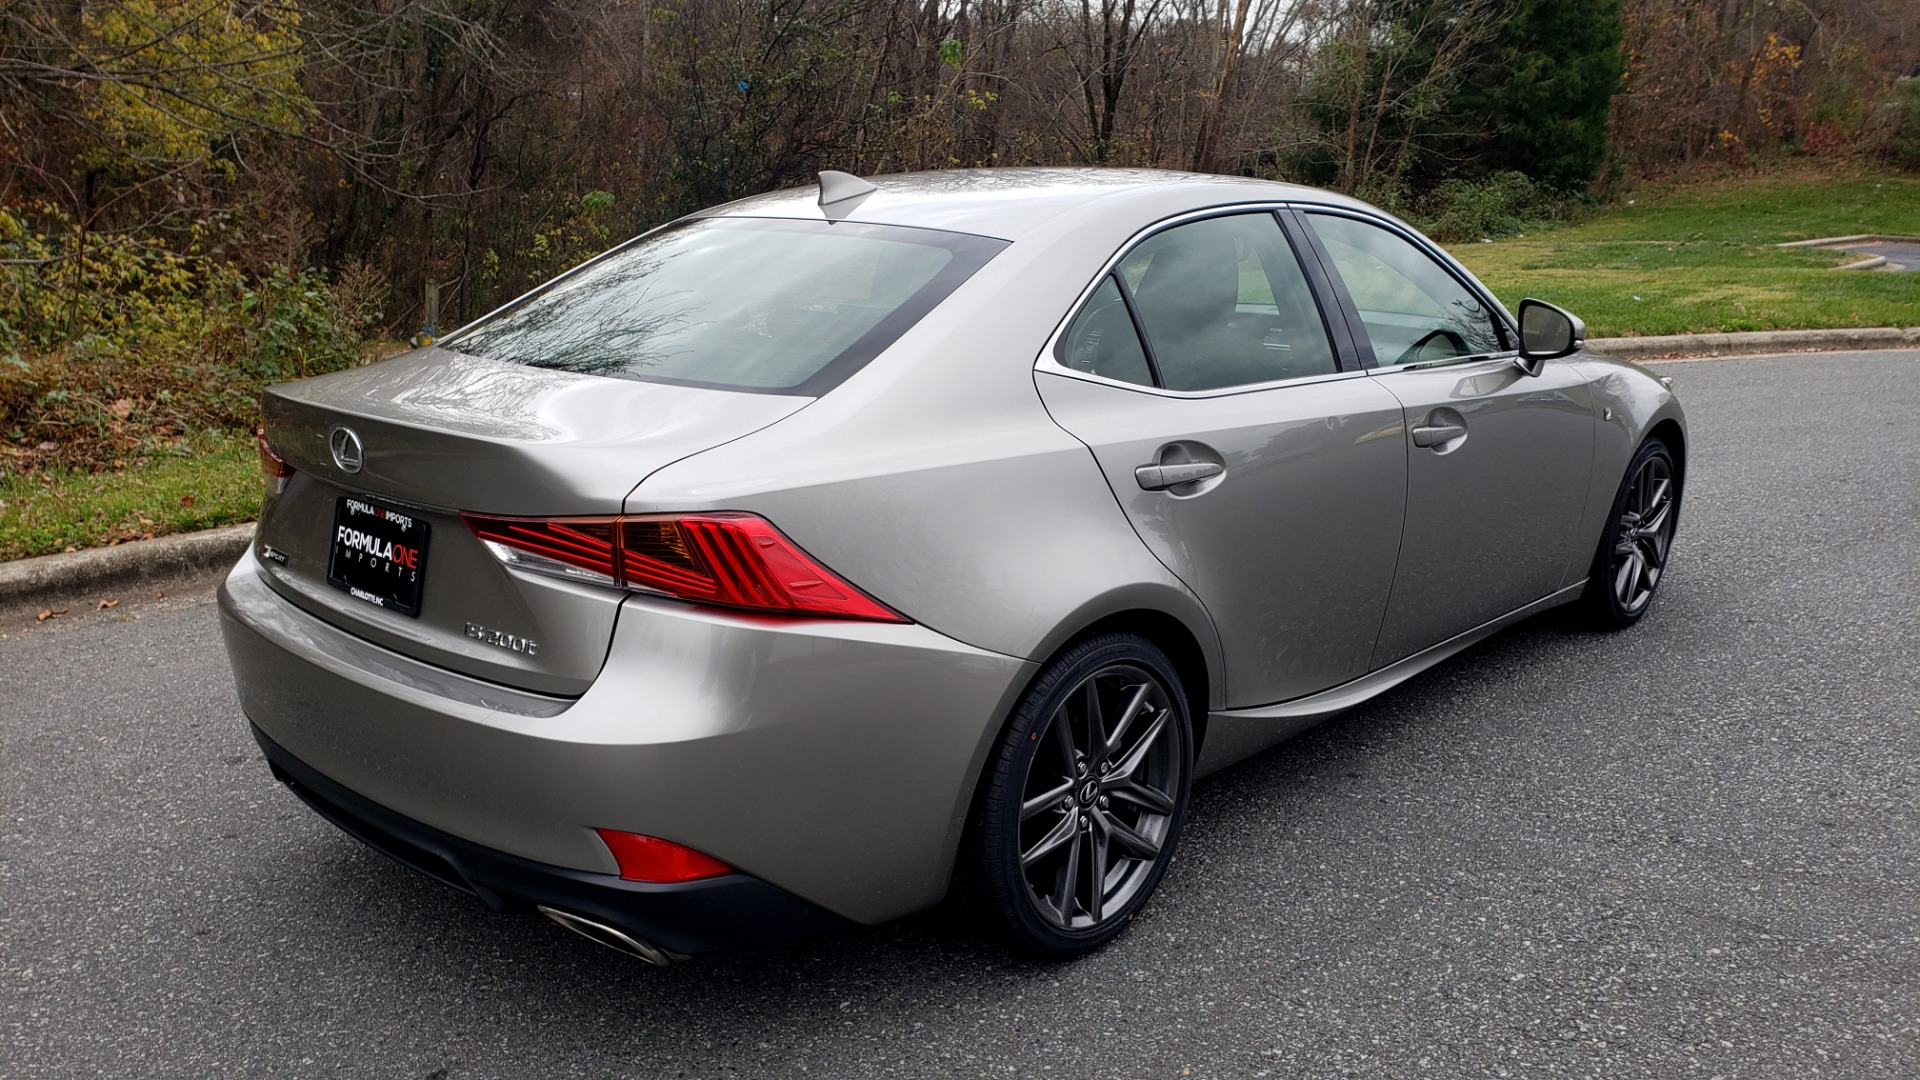 Used 2017 Lexus IS 200 TURBO F-SPORT / BSM / SUNROOF / VENT SEATS / REARVIEW for sale Sold at Formula Imports in Charlotte NC 28227 9